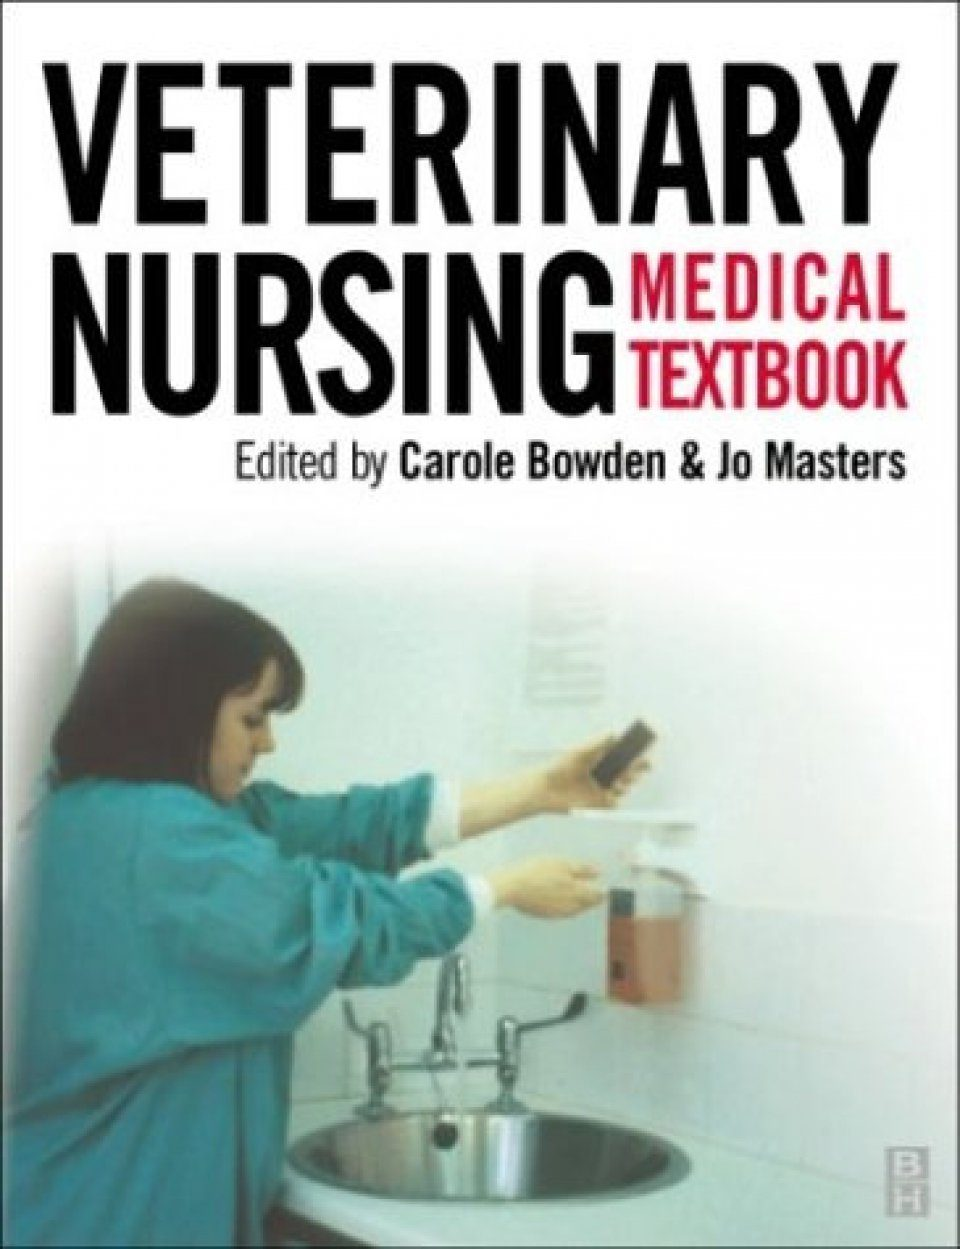 Veterinary Nursing Medical Textbook